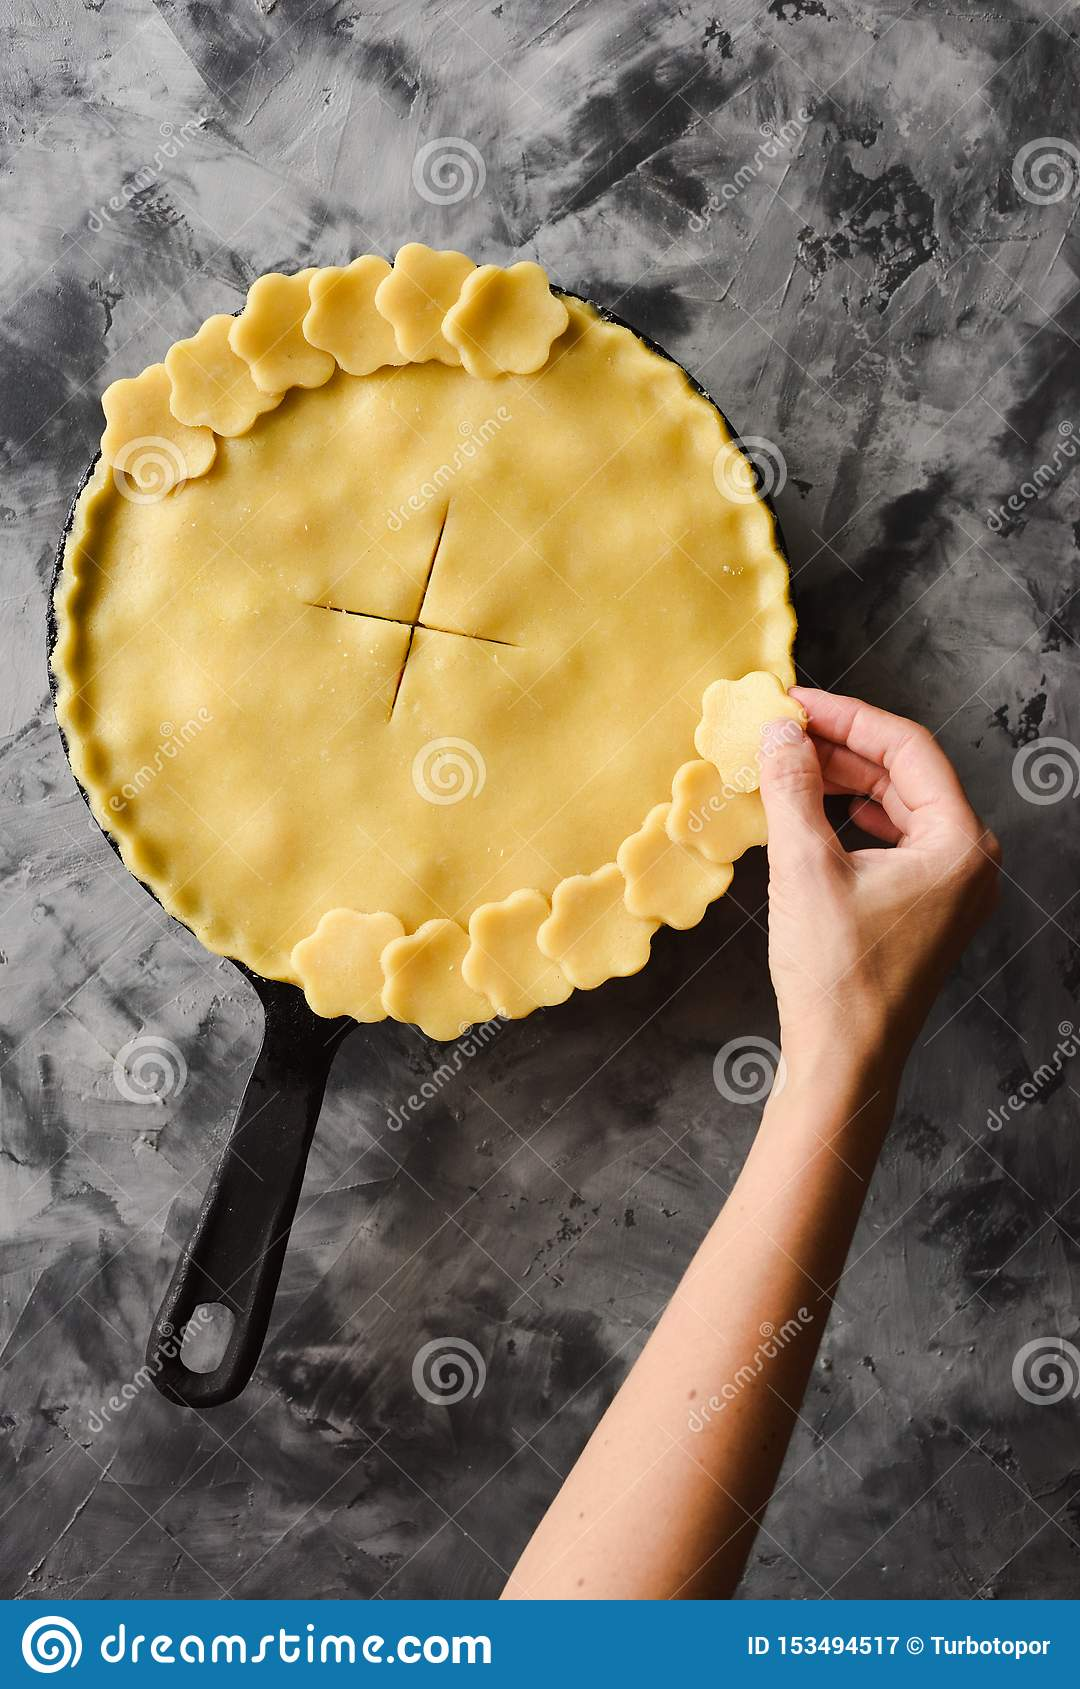 Making traditional berry pie in cast iron pan. Slender woman hand decorating crust of raw pie before baking on dark background top